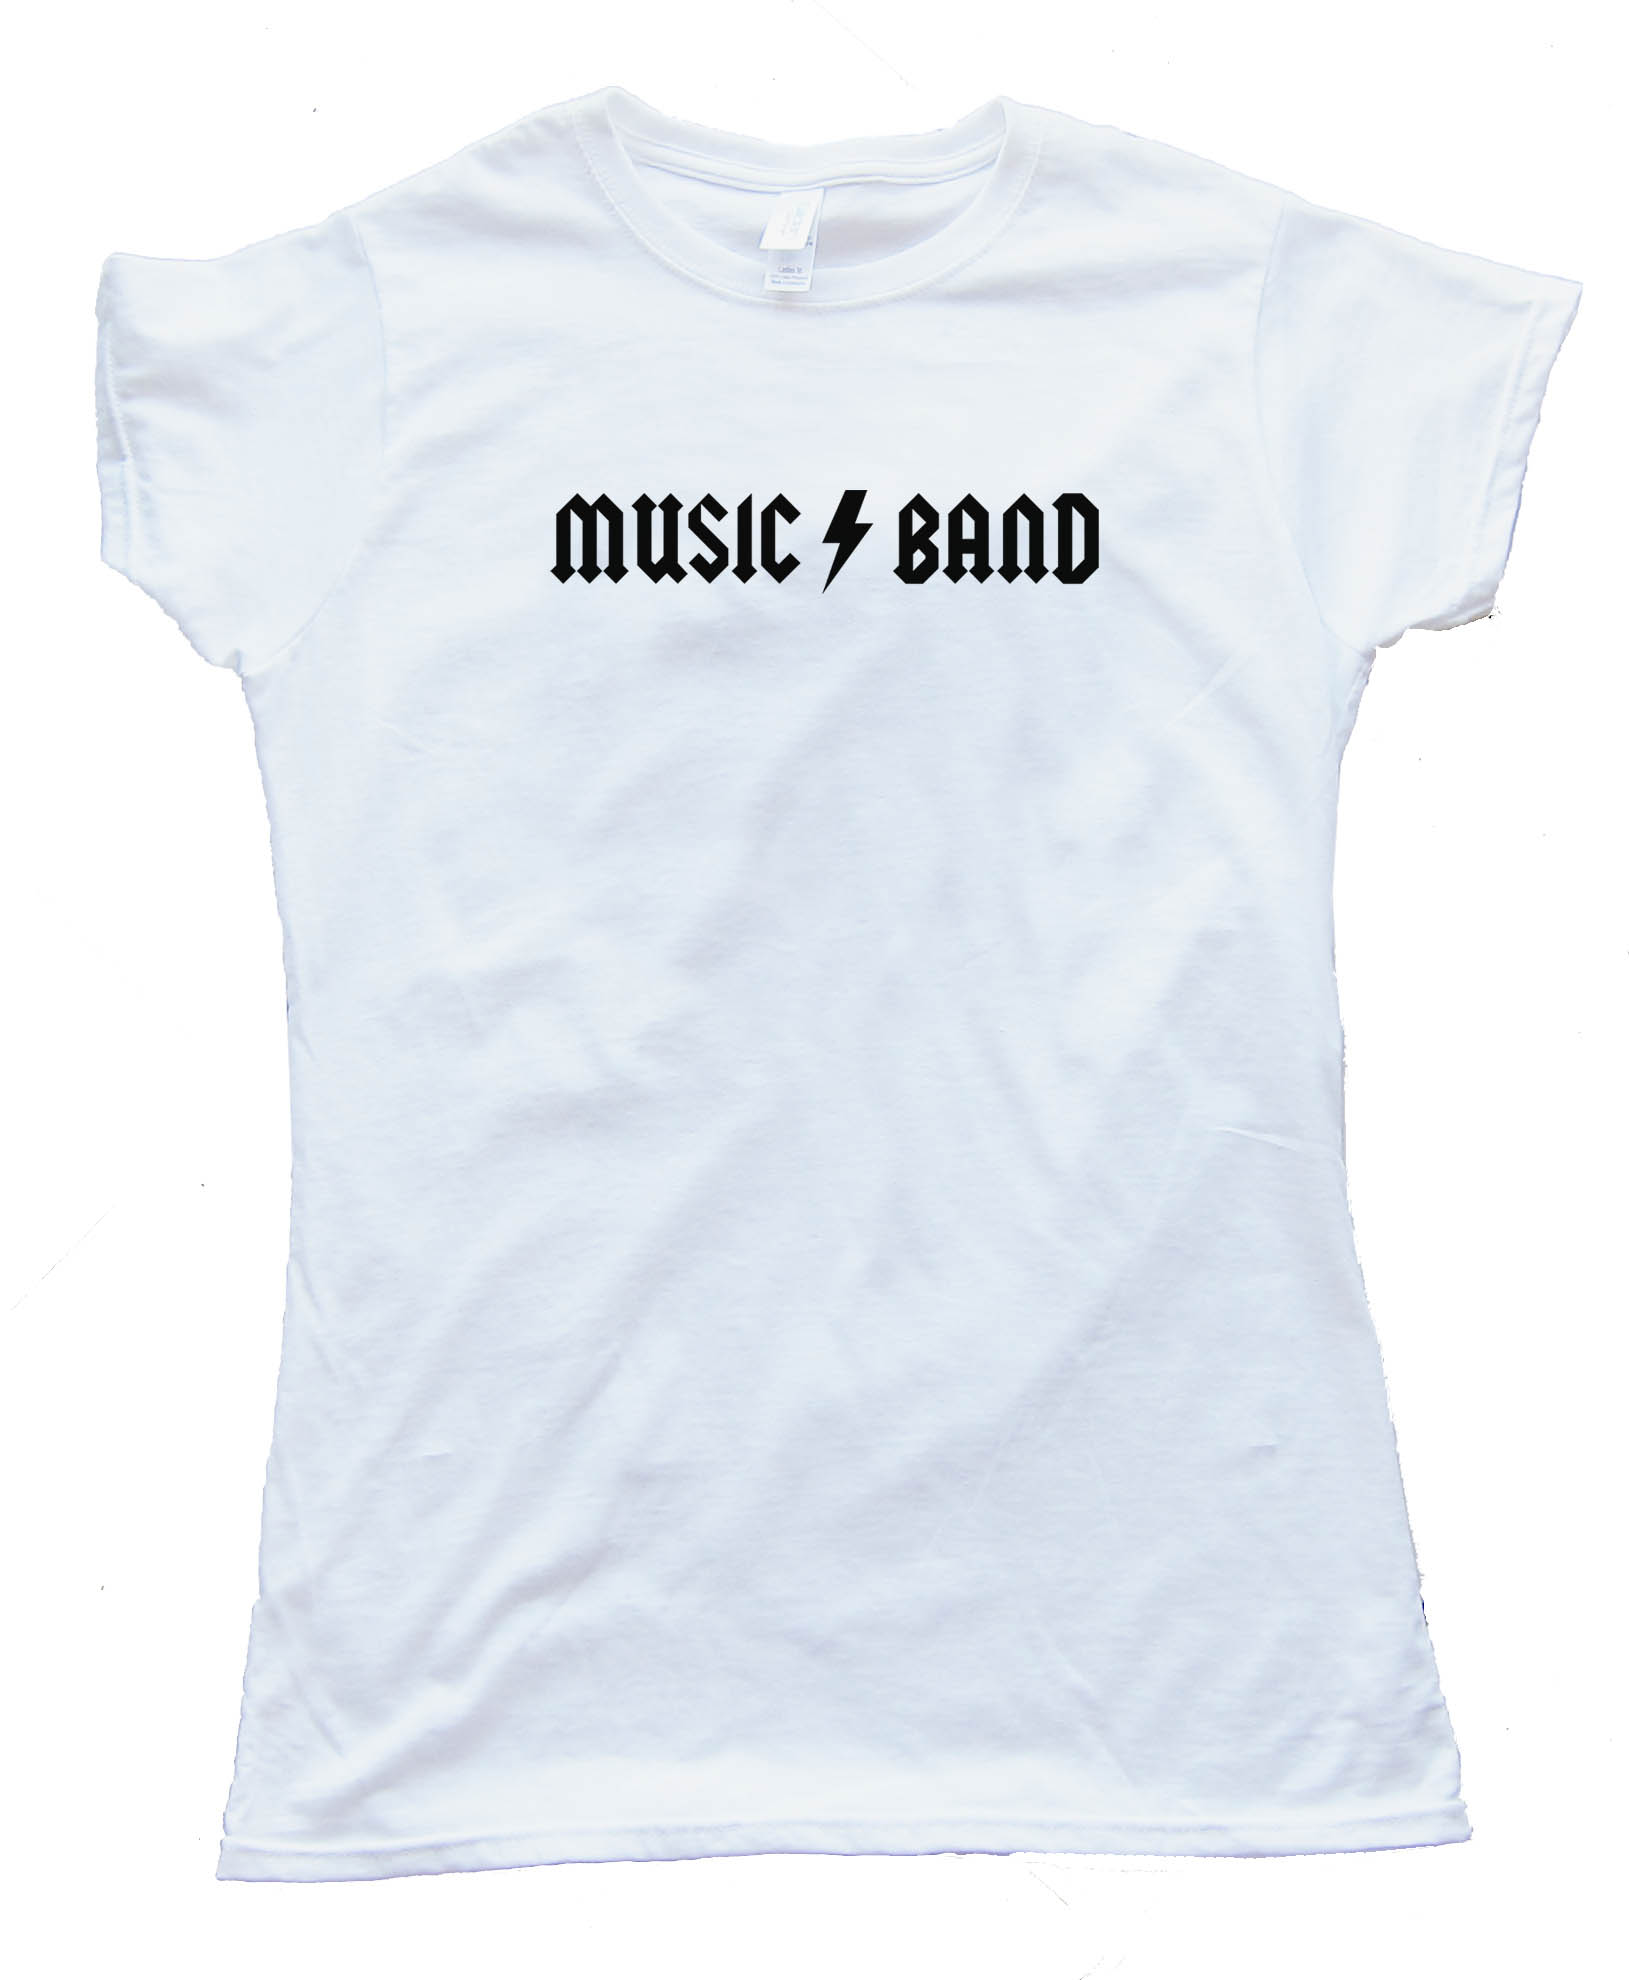 Music Band Airheads Tee Shirt